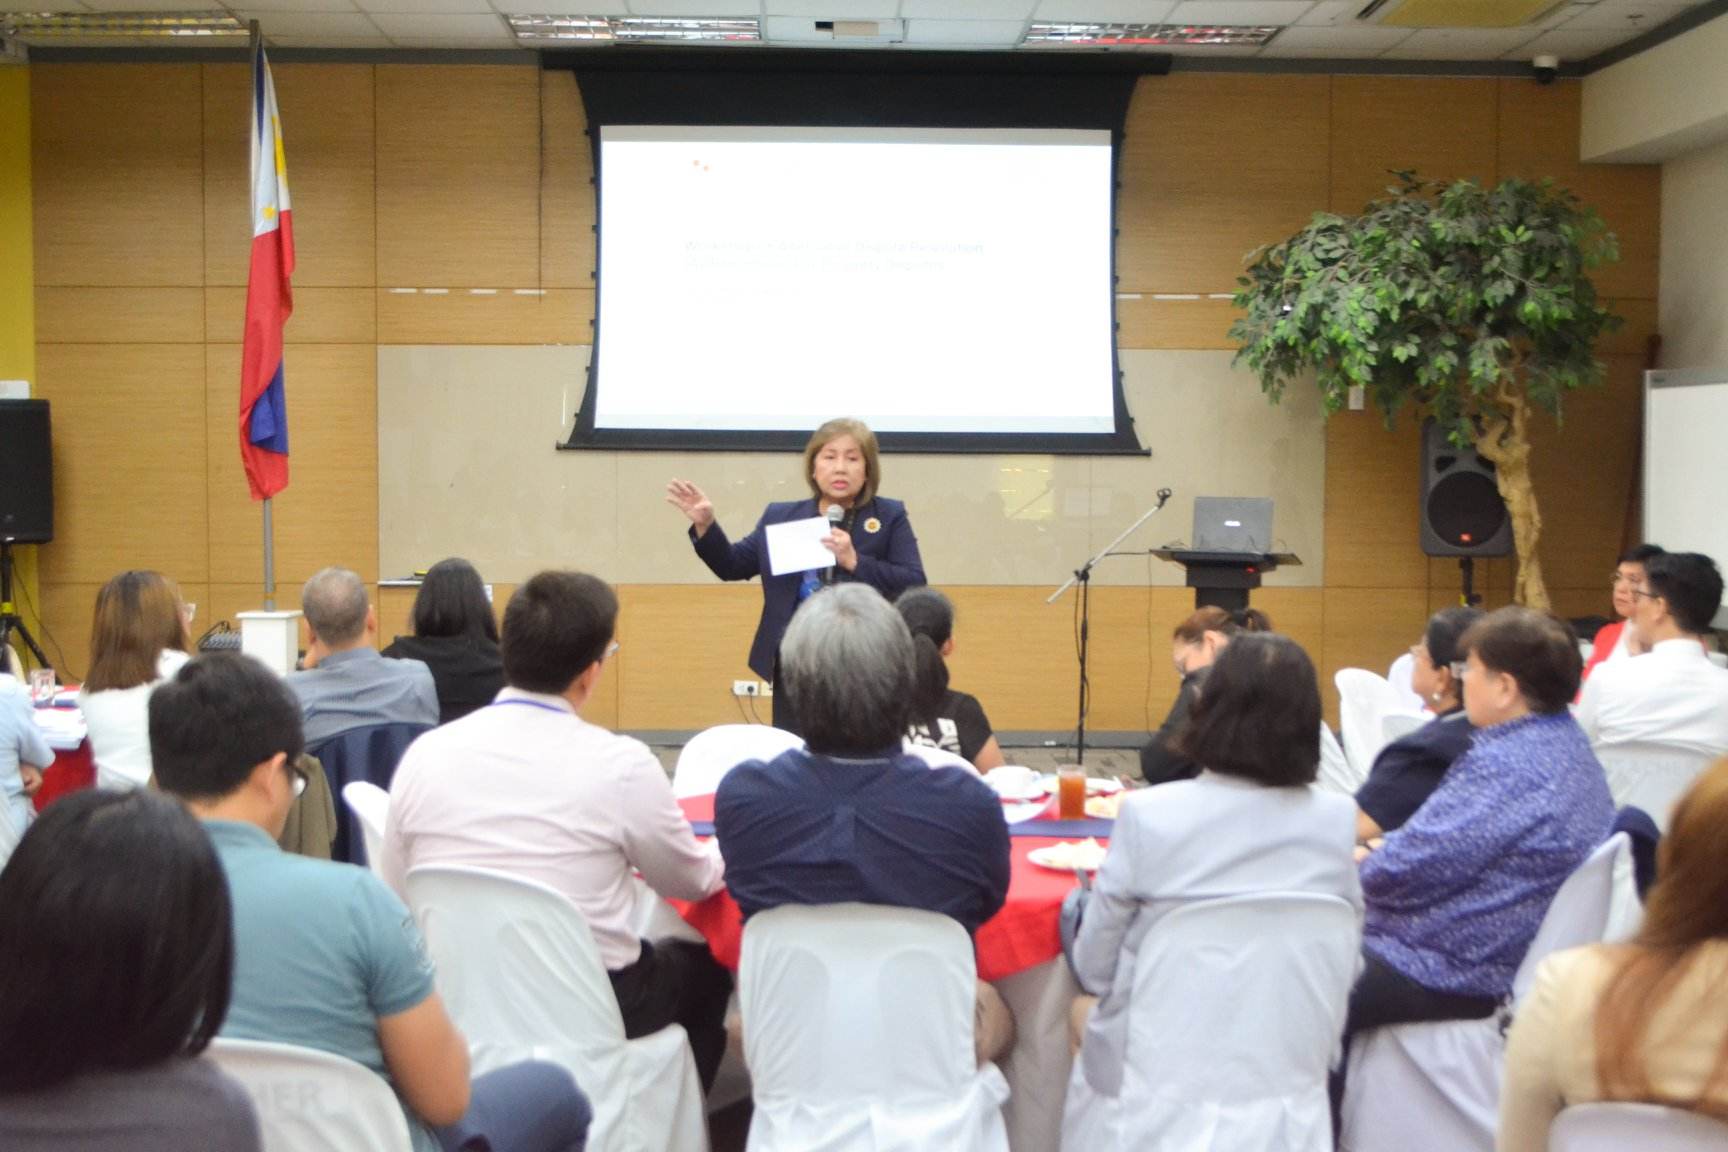 IPOPHL steps up intellectual property training through IP